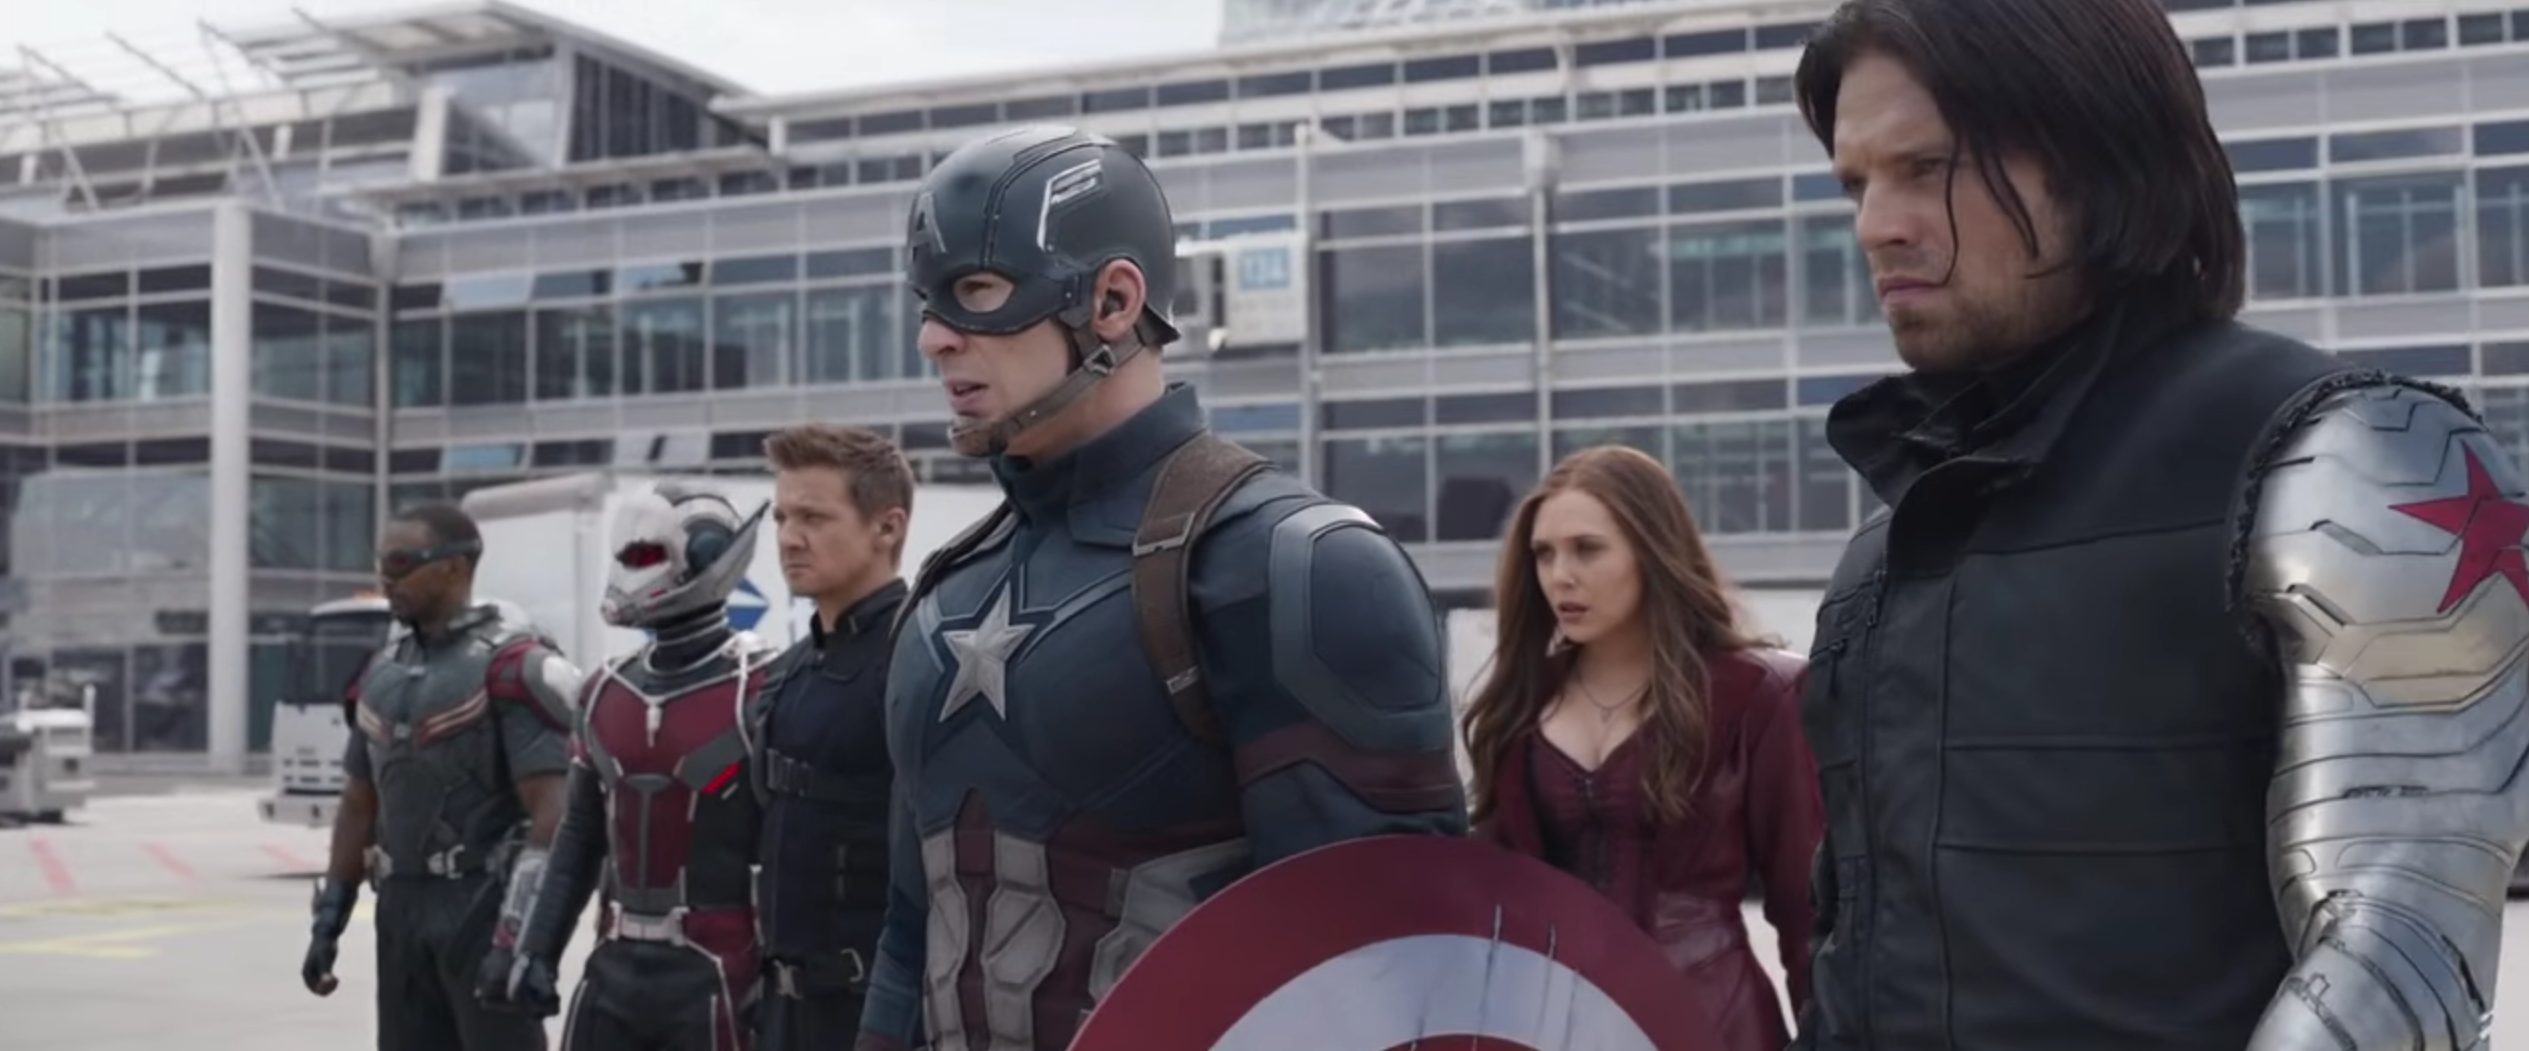 Review: 'Captain America: Civil War' Is a New Kind of Marvel Movie